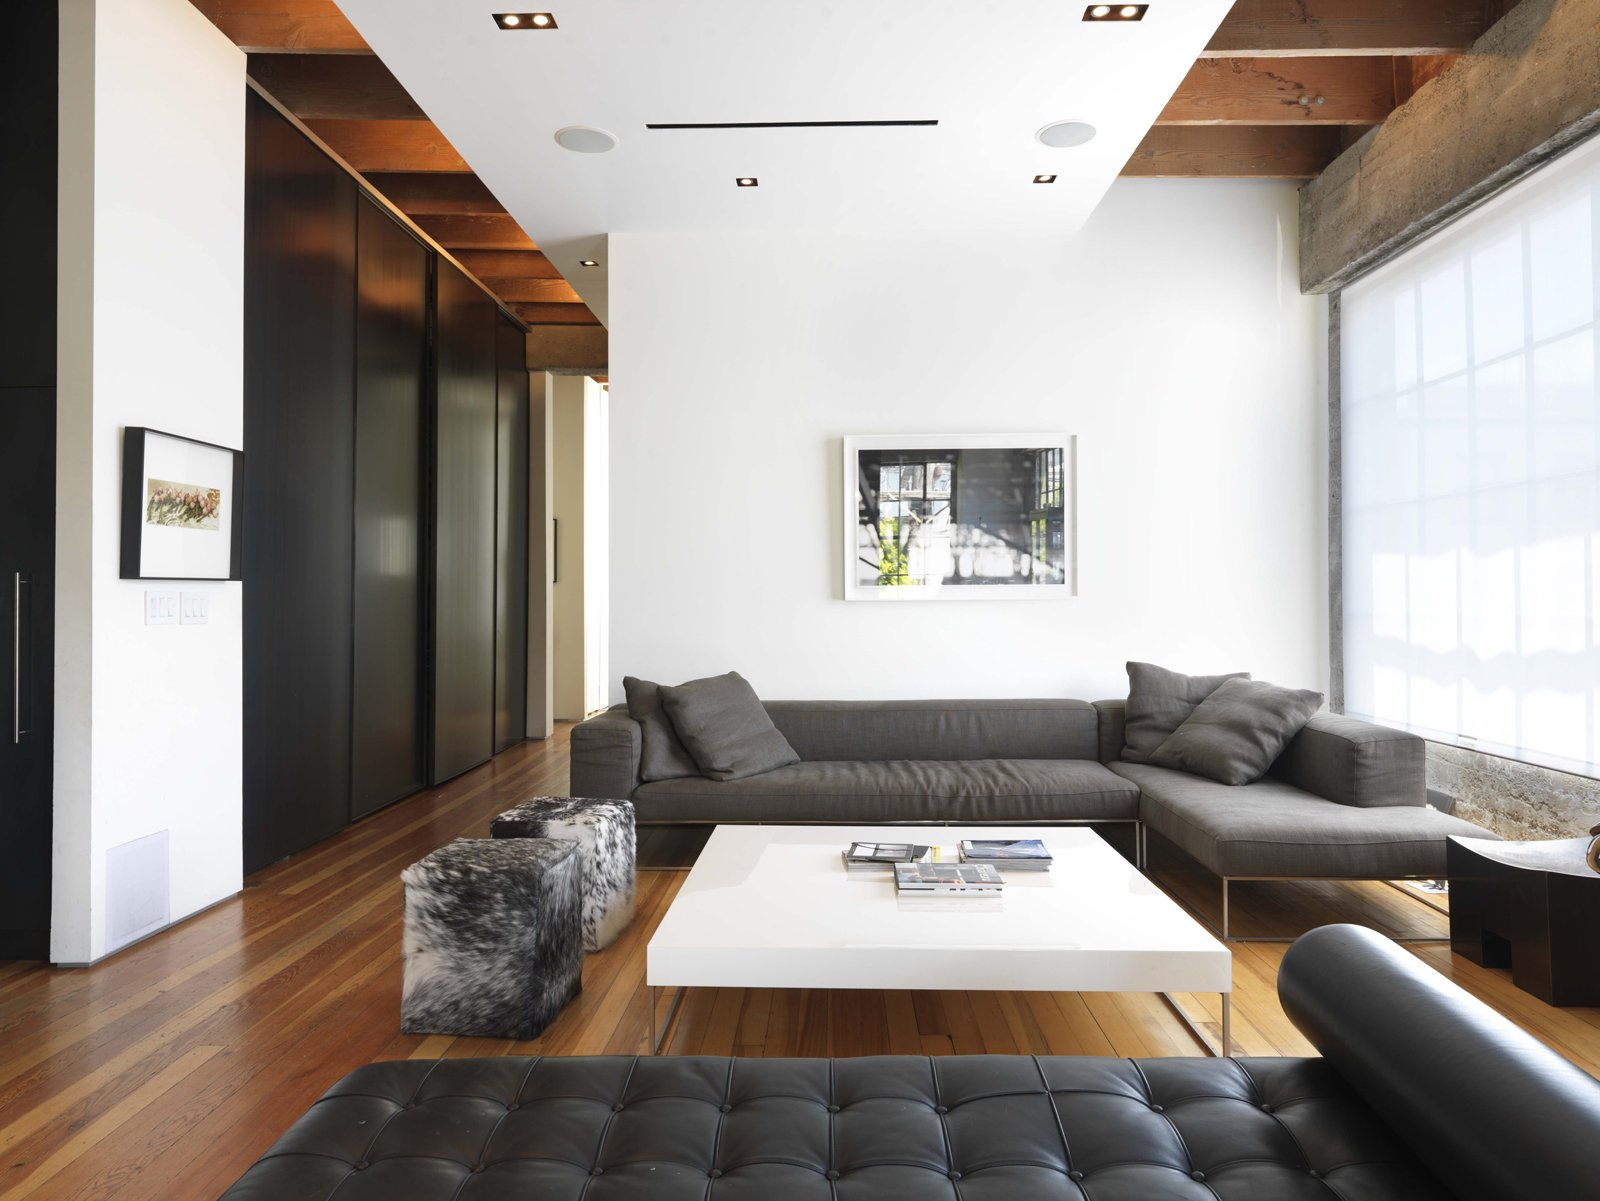 The open plan, high ceilings, and white walls all amplify the light that streams into the living room, accented with a Barcelona Couch by Mies van der Rohe for Knoll and two Blythe Pony Cube ottomans by Gus Design.  Photo 5 of 7 in A Couple Cuts Their Commute and Designs All Day